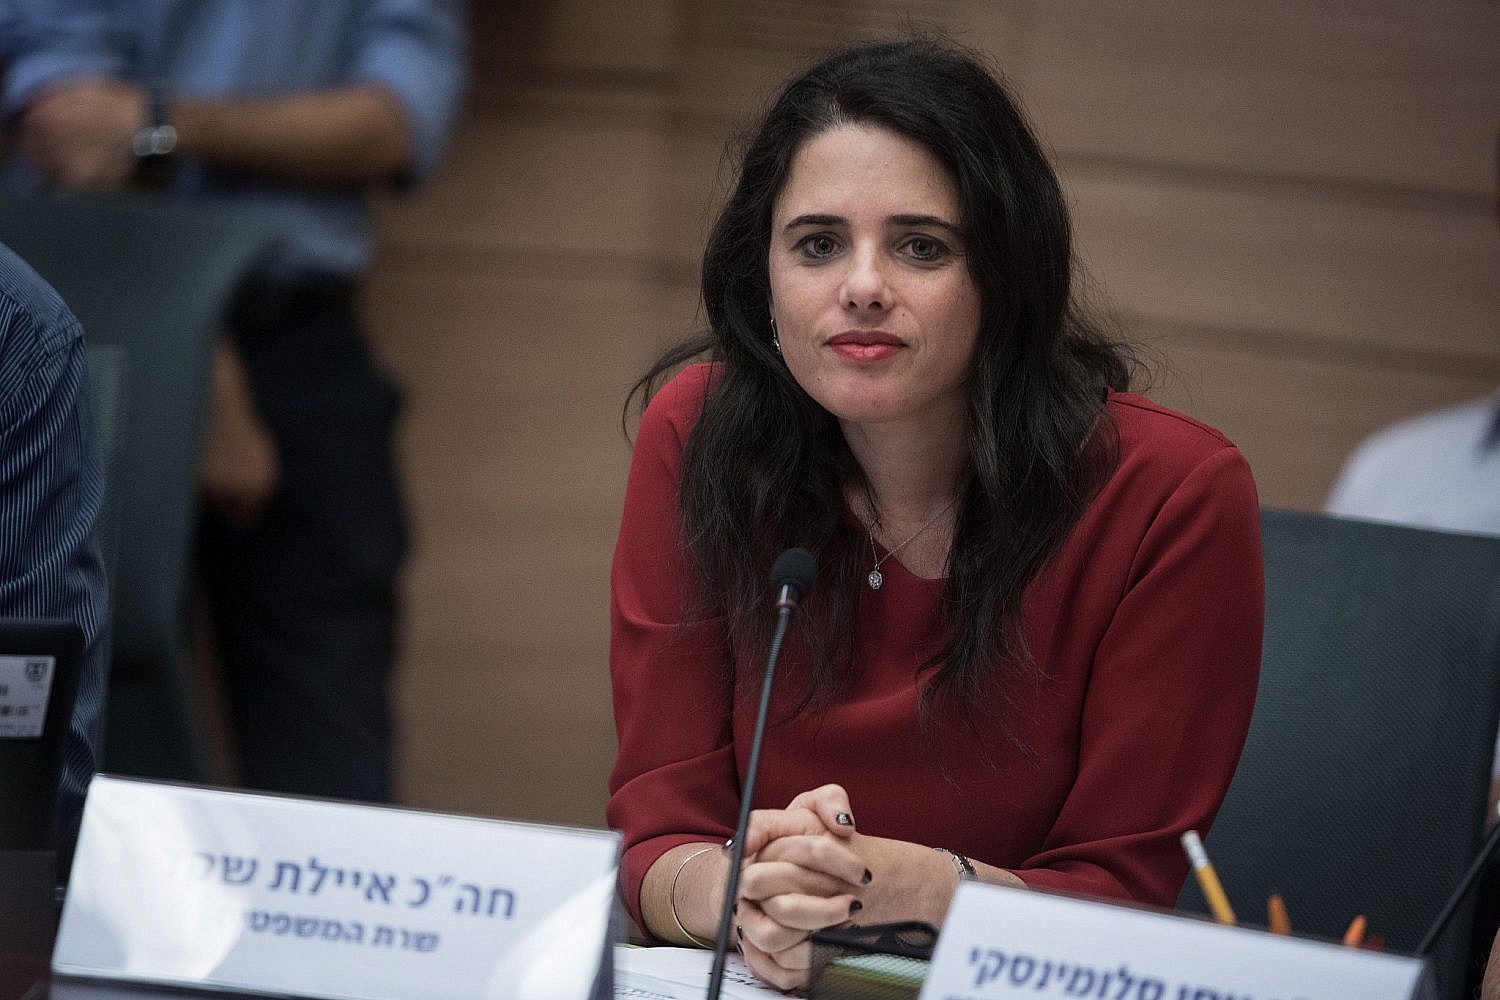 Justice Minister Ayelet Shaked attends a Constitution Committee meeting at the Knesset, July 2, 2018. (Hadas Parush/Flash90)